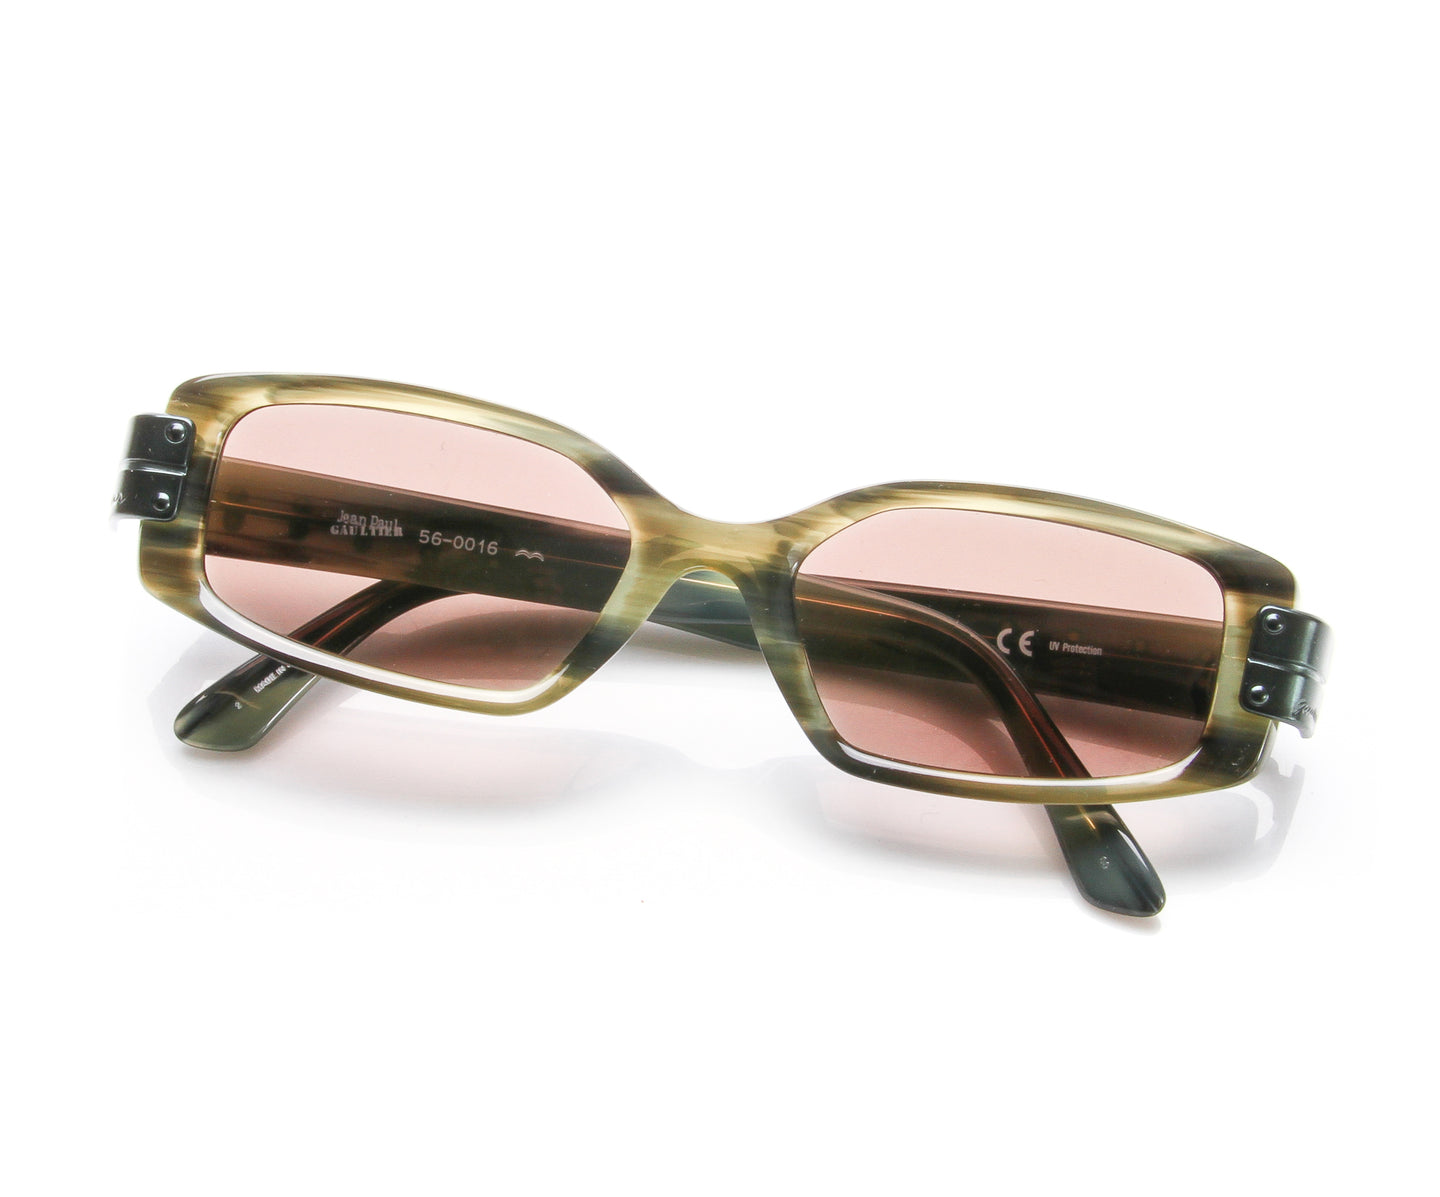 Jean Paul Gaultier 56 0016 2, Jean Paul Gaultier , glasses frames, eyeglasses online, eyeglass frames, mens glasses, womens glasses, buy glasses online, designer eyeglasses, vintage sunglasses, retro sunglasses, vintage glasses, sunglass, eyeglass, glasses, lens, vintage frames company, vf